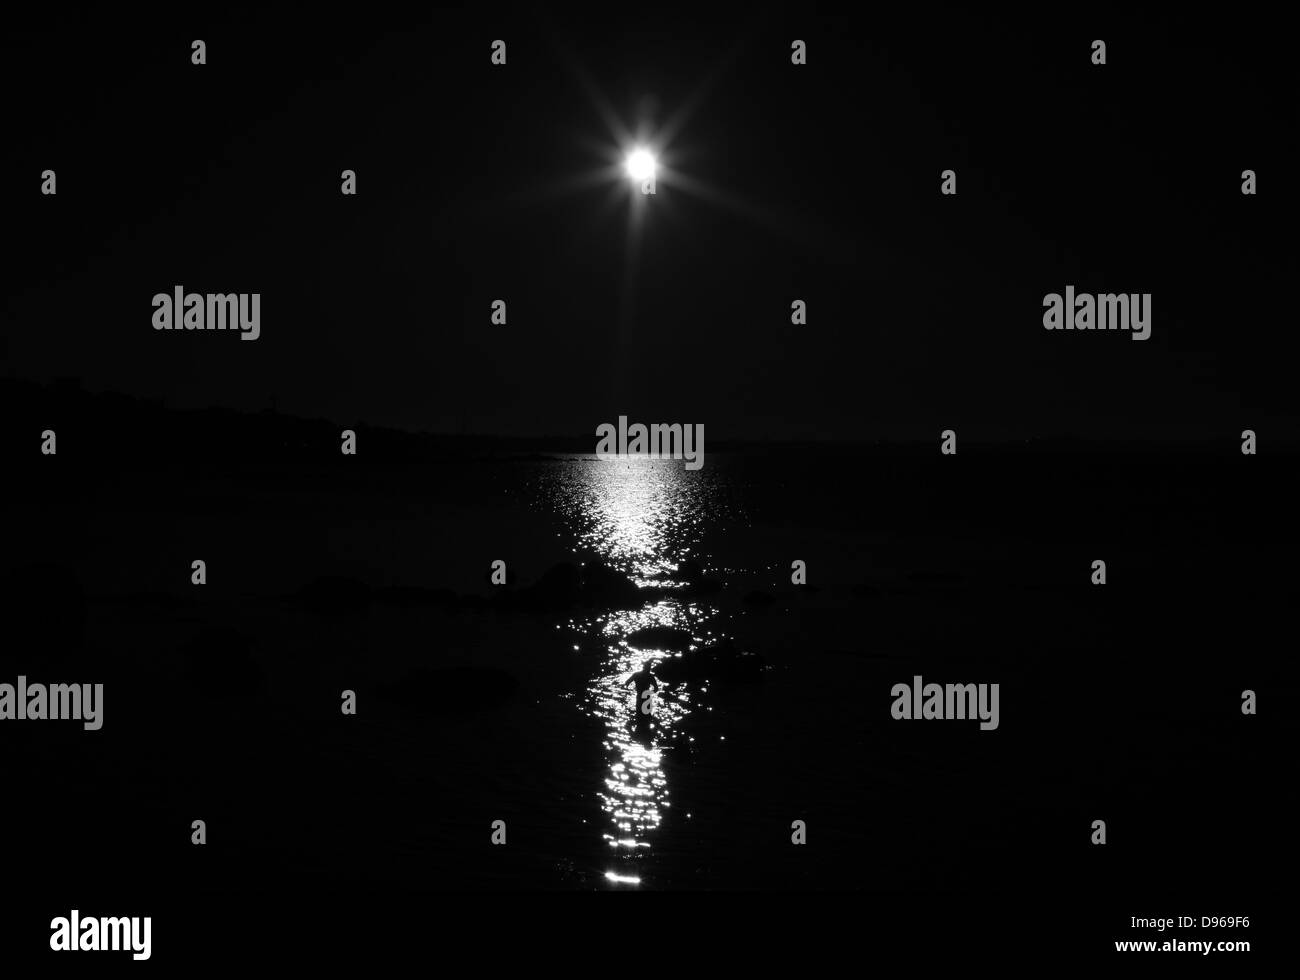 The figure of a man standing in the sea silhouetted by a bright sun. - Stock Image